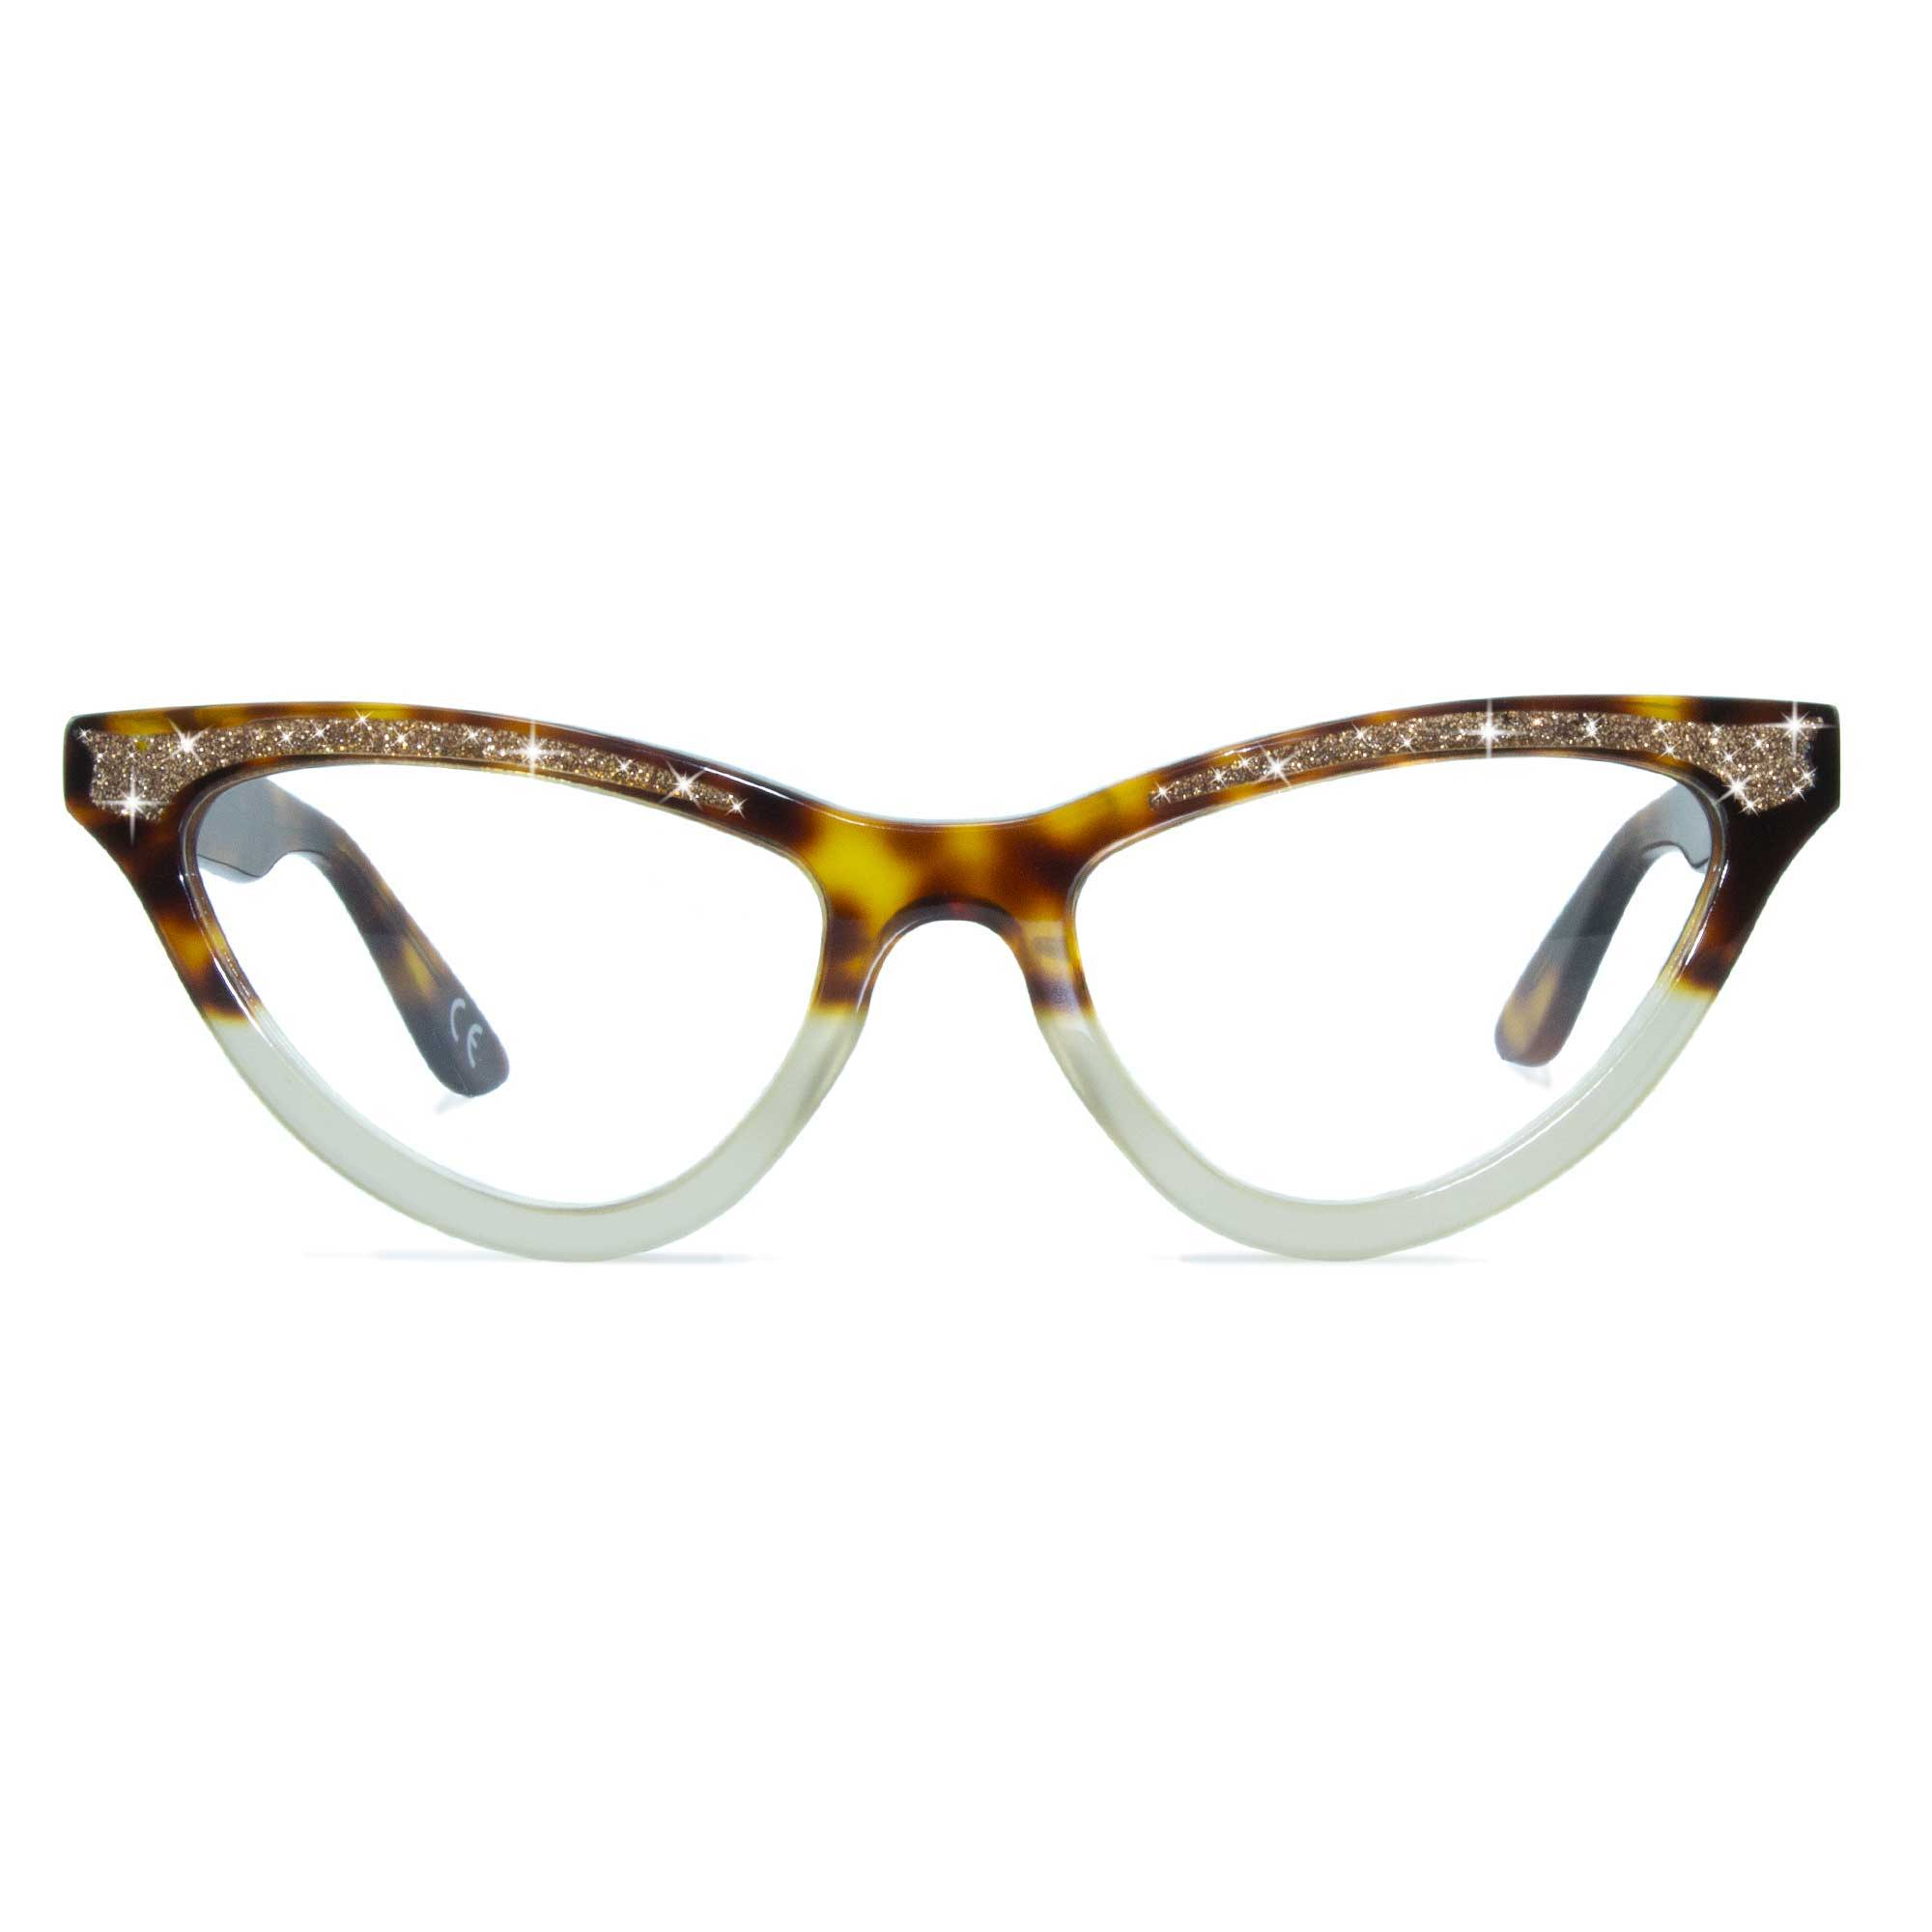 Ladies glasses frames by JOIUSS model. Maryloo